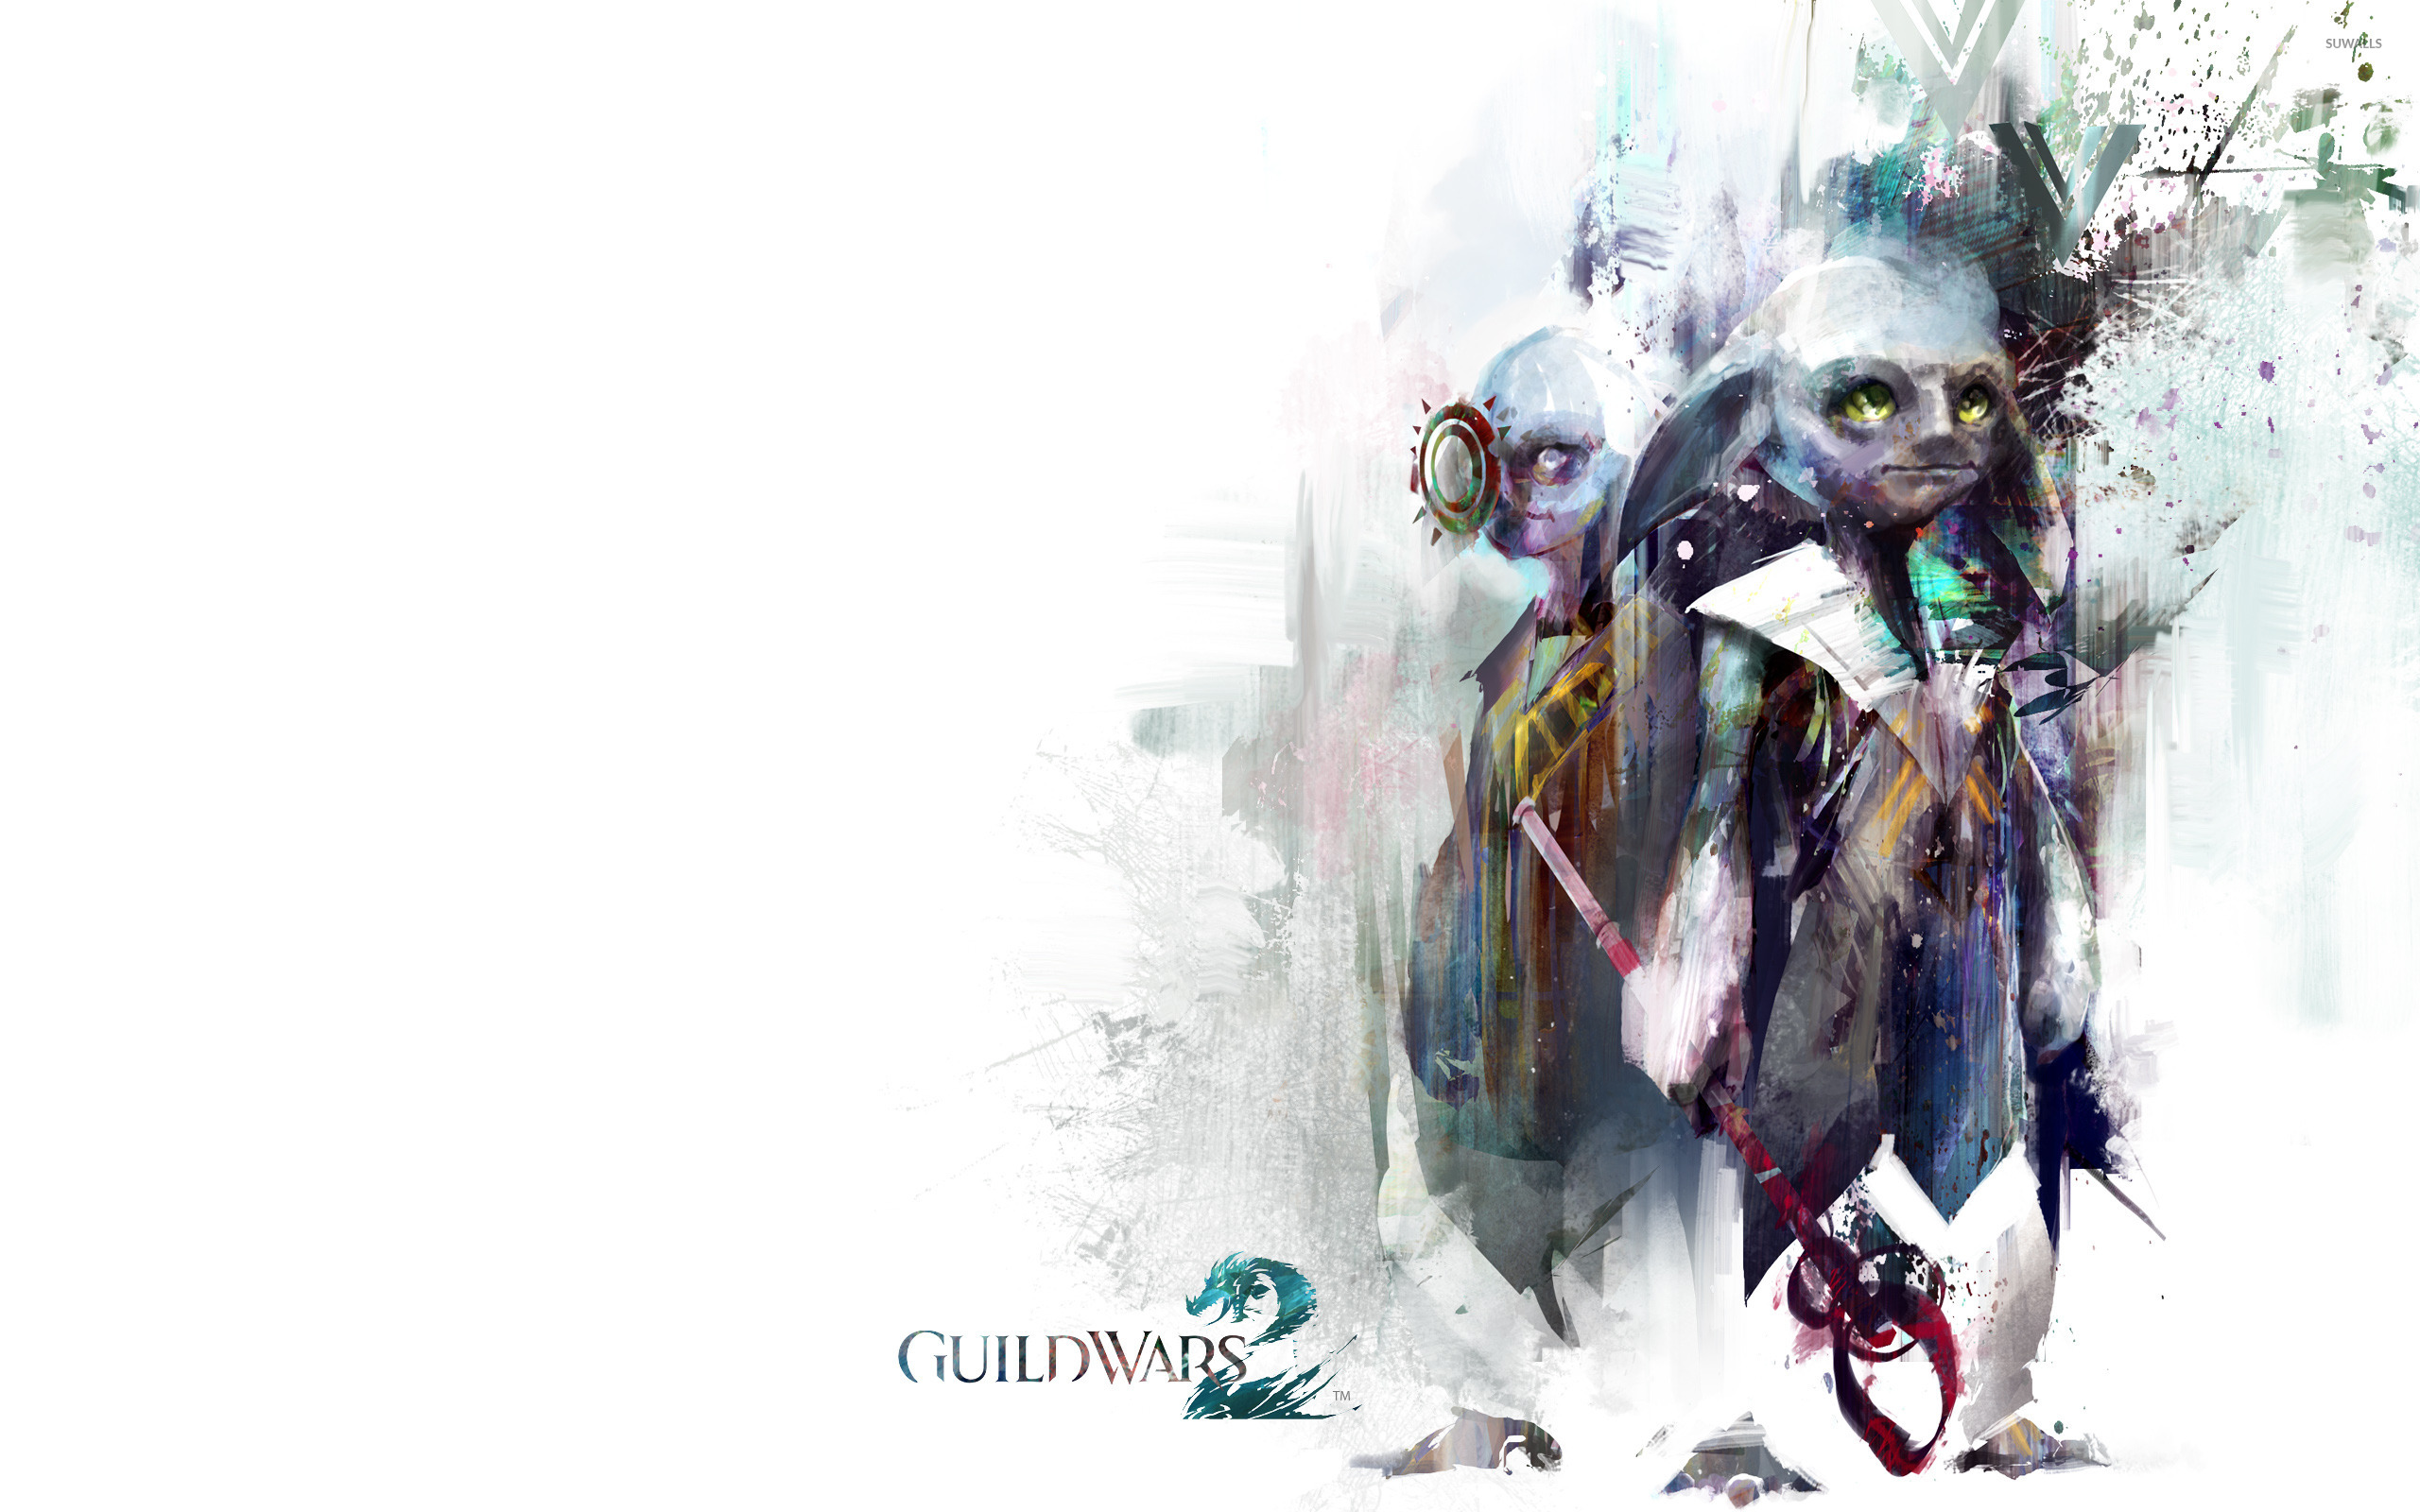 Female warrior with a giant wolf in Guild Wars 2 wallpaper - Game